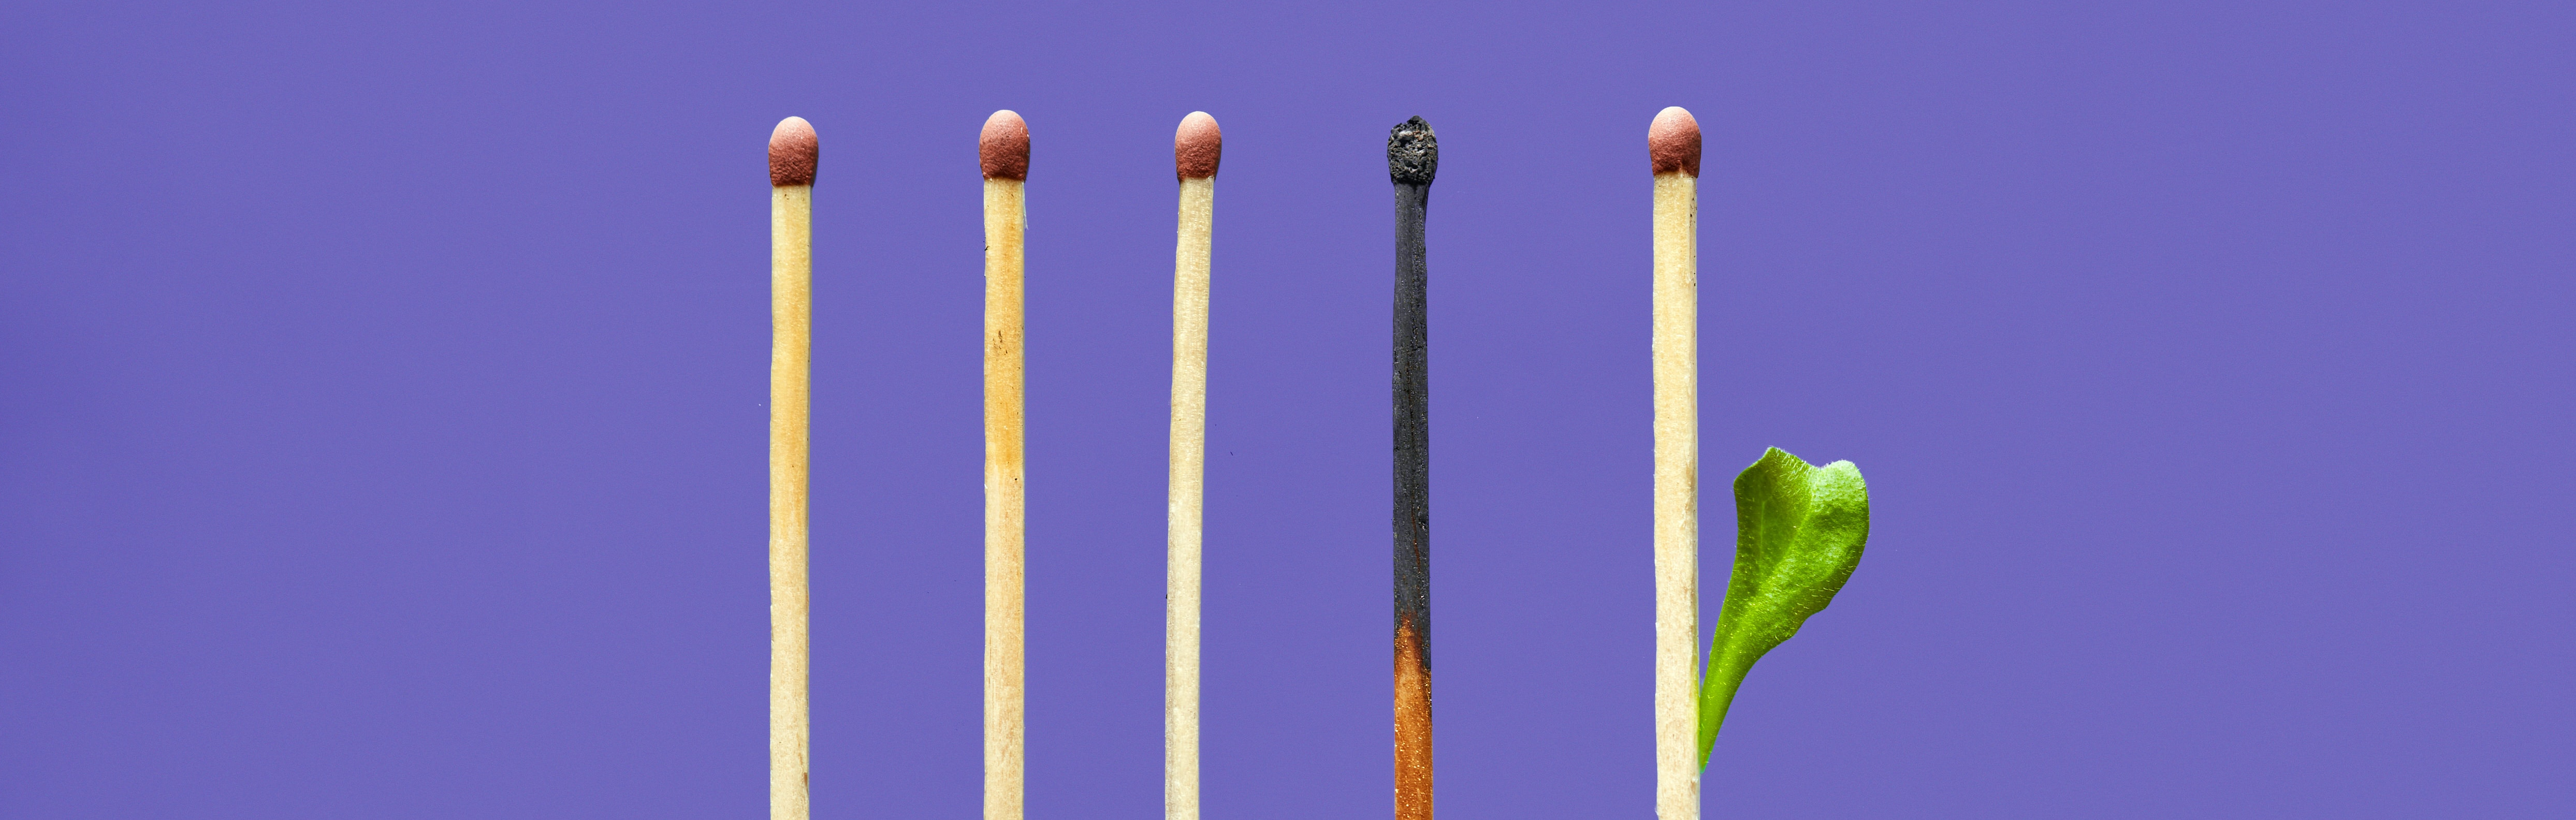 A purple background. Five matches